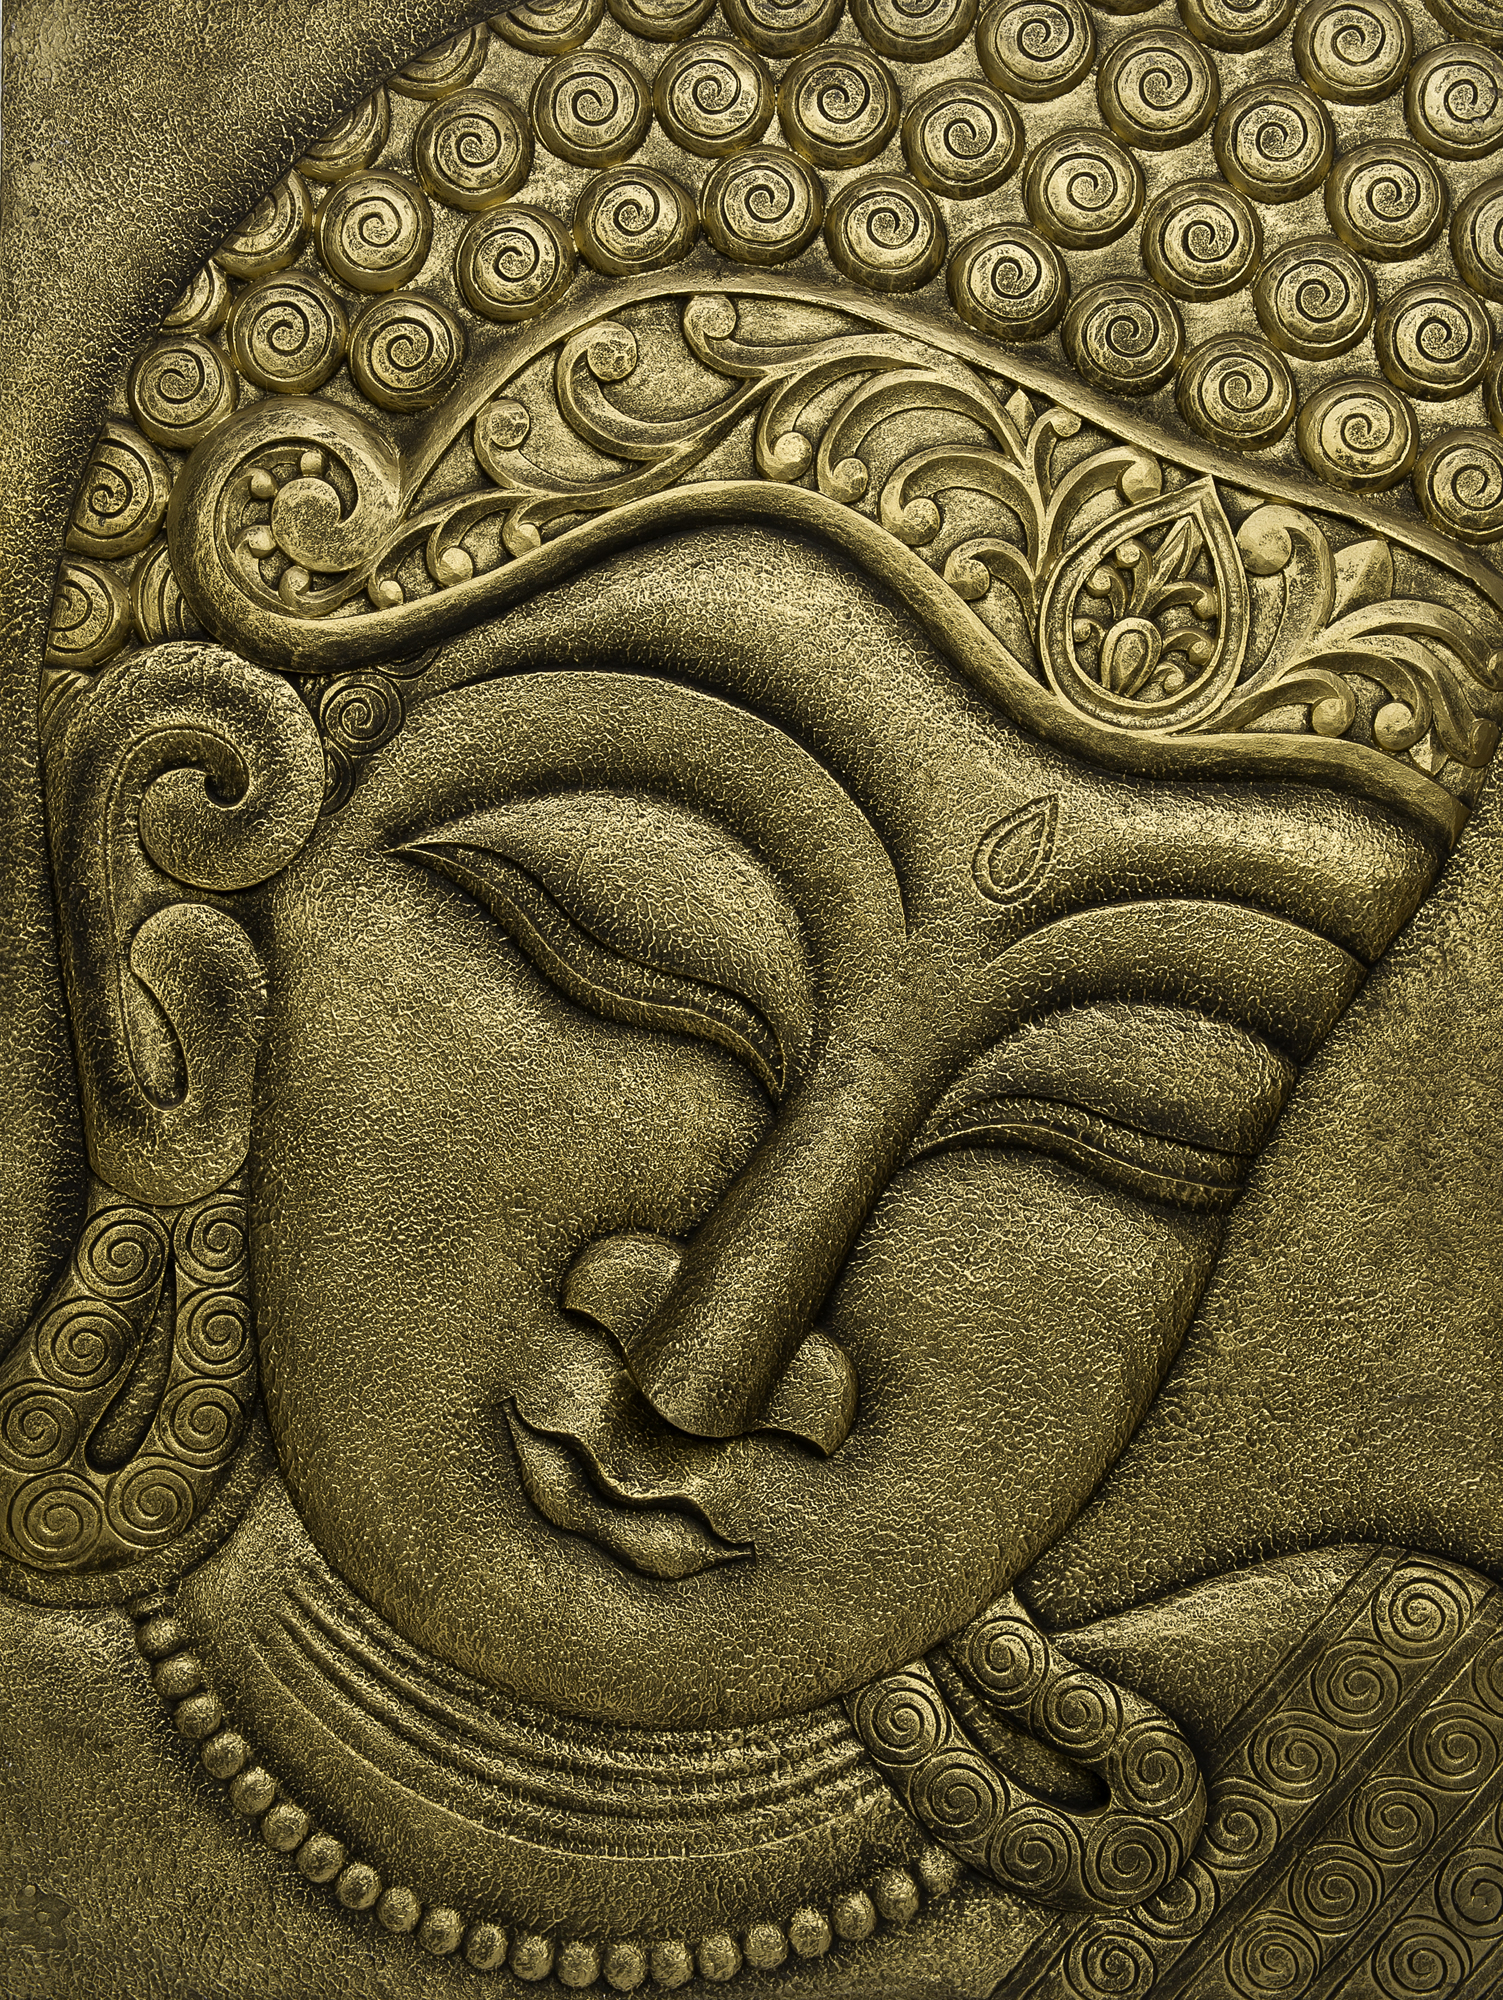 The buddha face carved in relief wall hanging